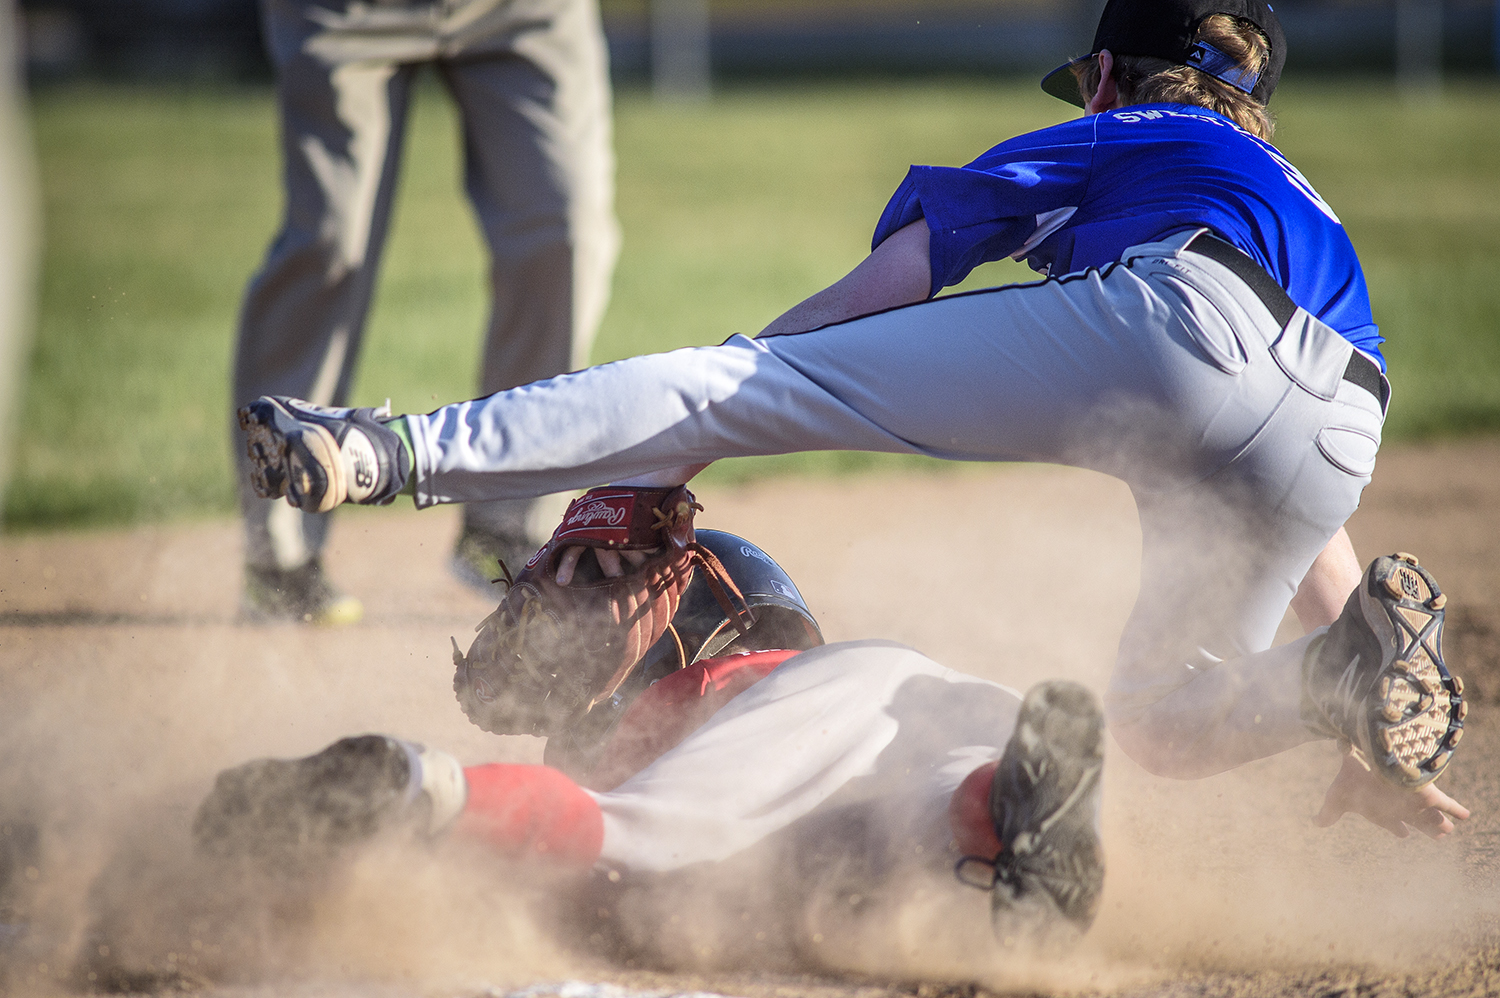 20160531MansfieldLittleLeague040215k.jpg